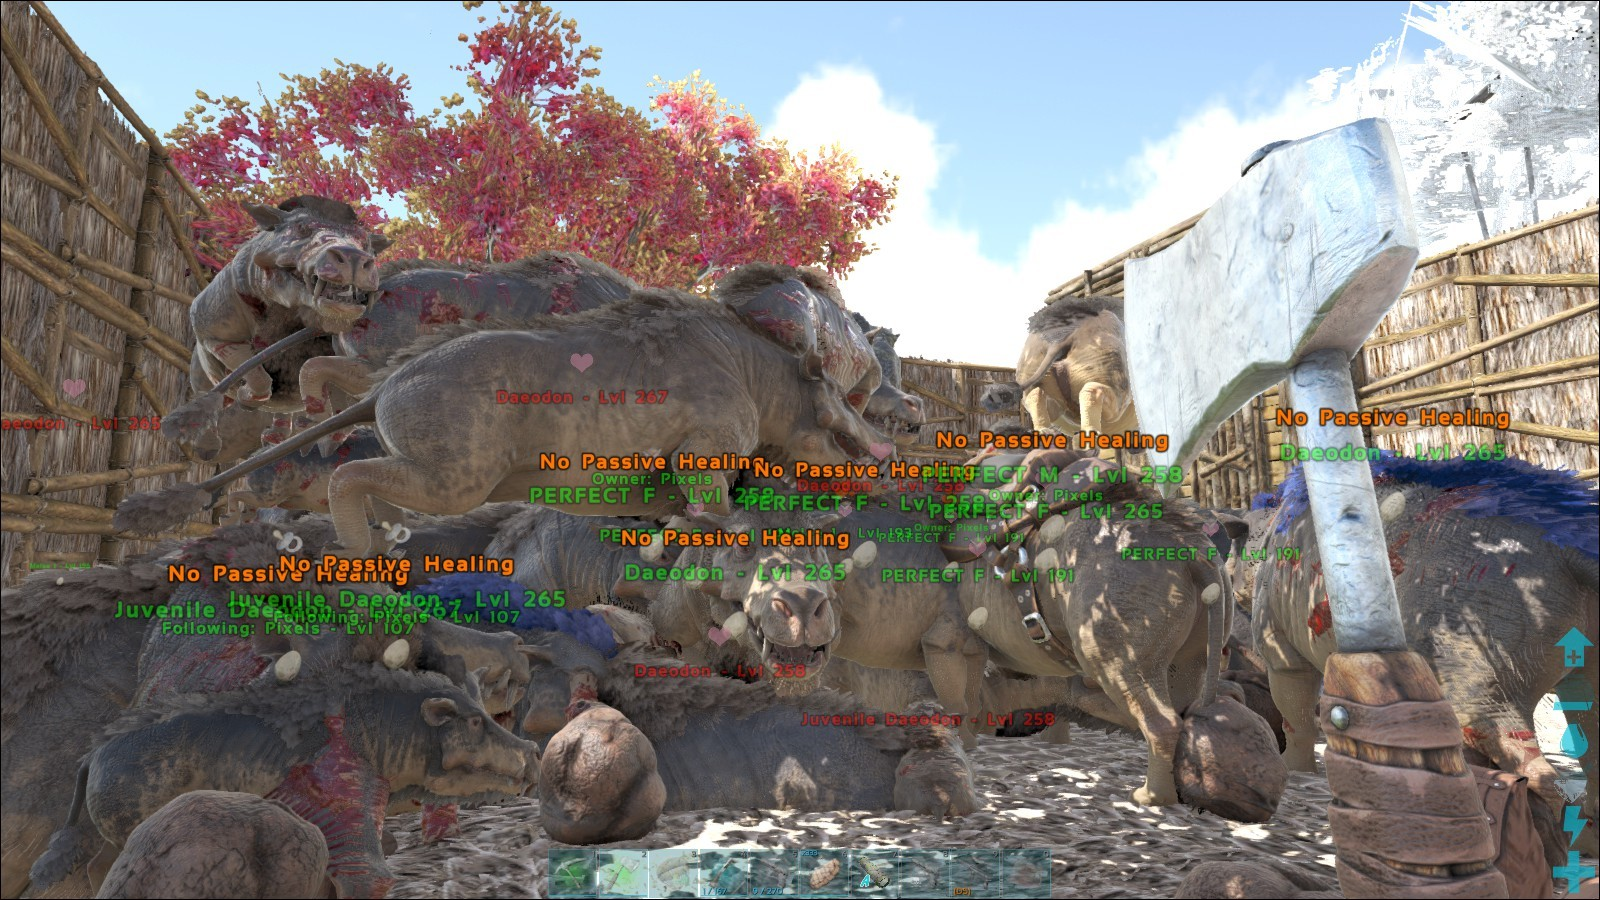 Searching For Ark Survival Evolved Admincheat summon daeodon_character_bp_c or admincheat spawndino blueprint'. searching for ark survival evolved